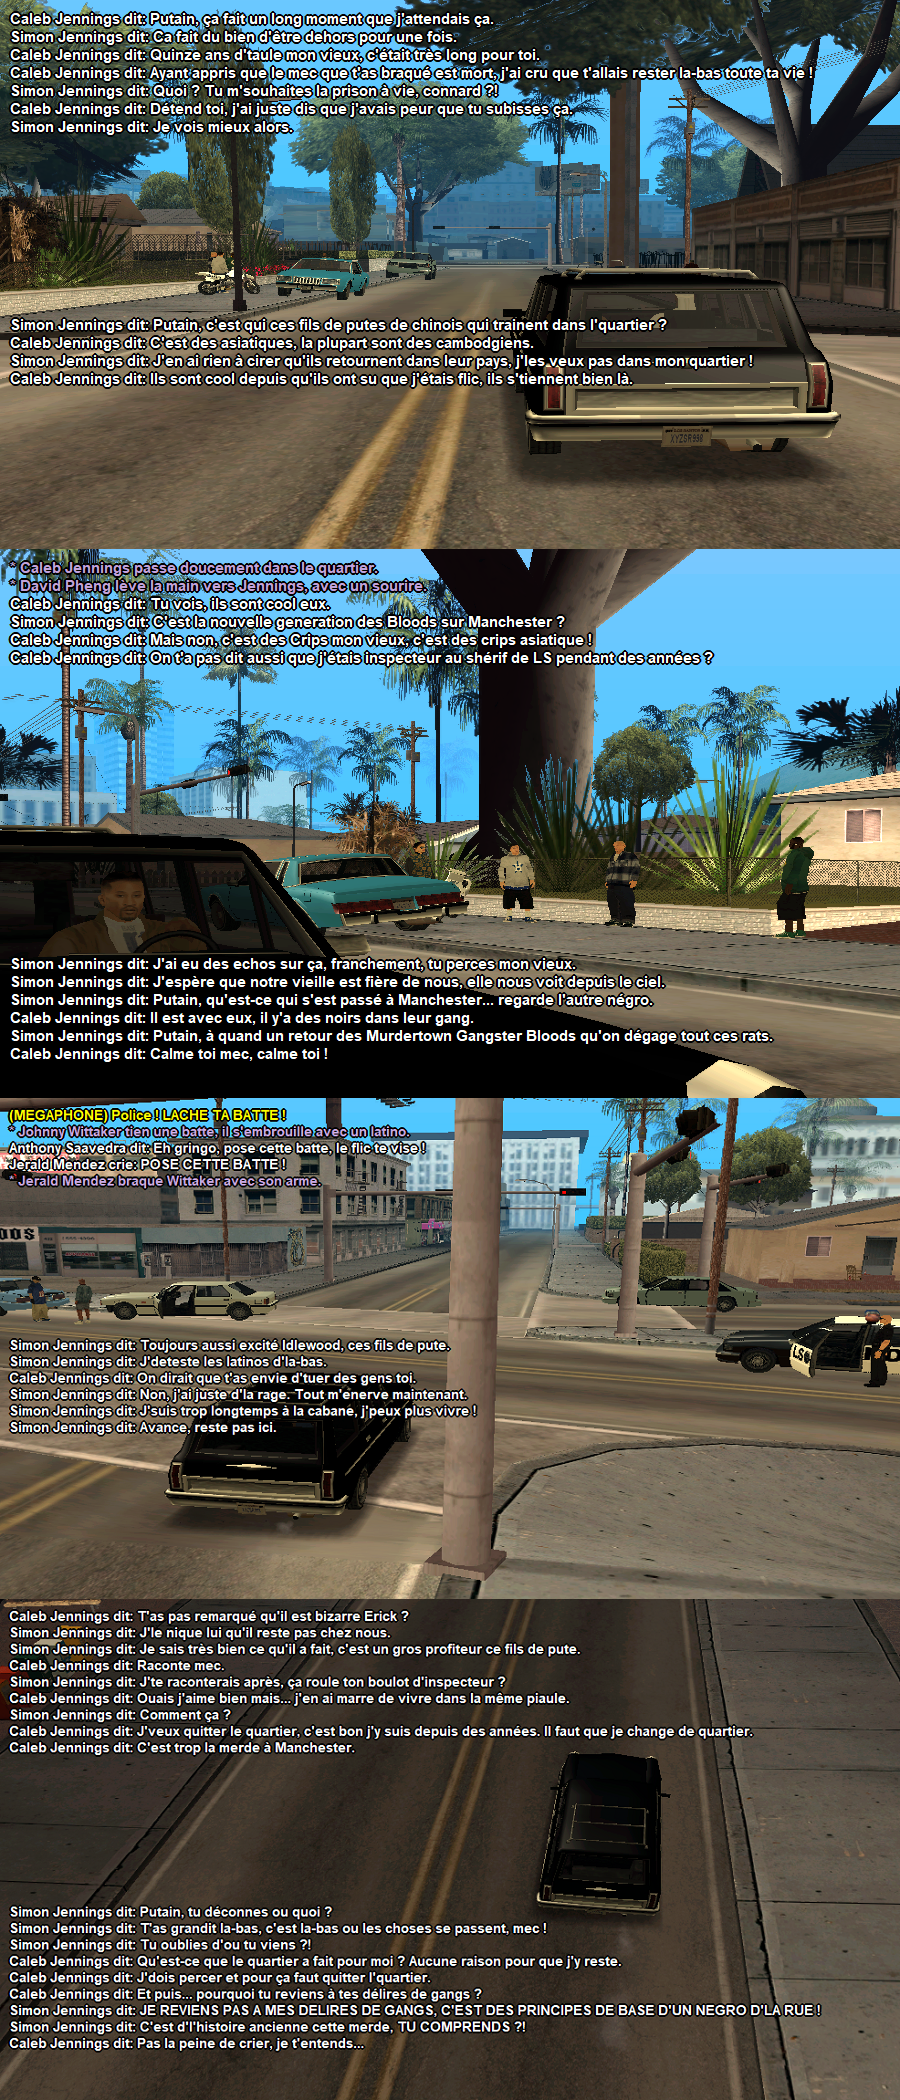 Los Santos Sheriff's Department - A tradition of service (8) - Page 16 1535636386-a